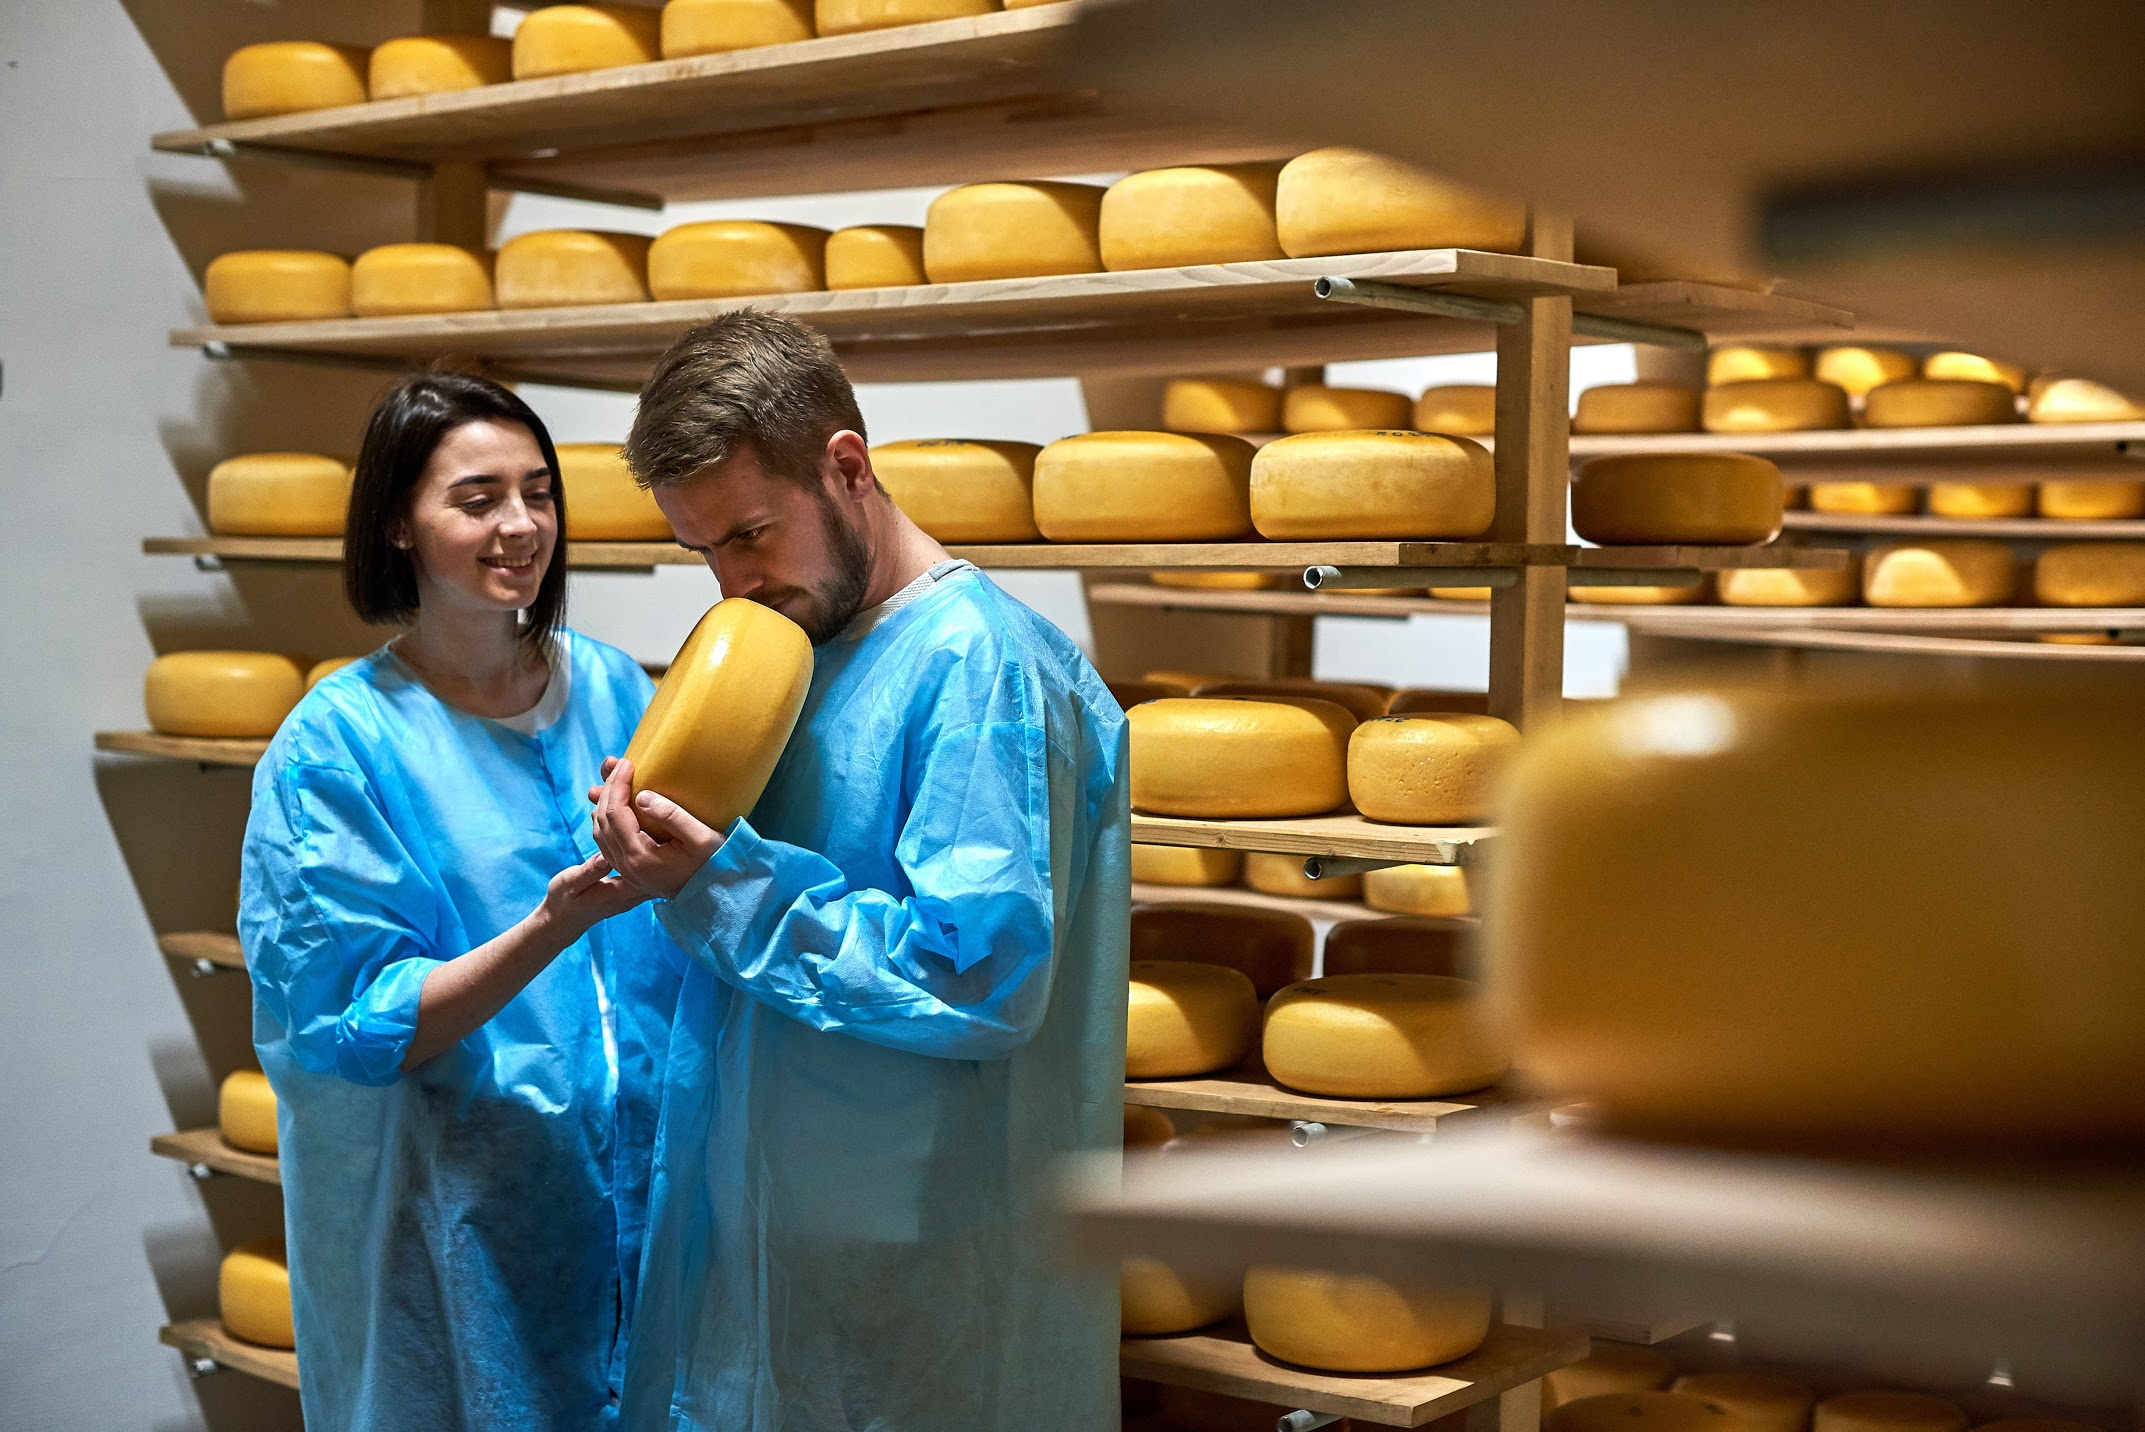 Cheese pass: how a professional football player became a cheesemaker. Also professional